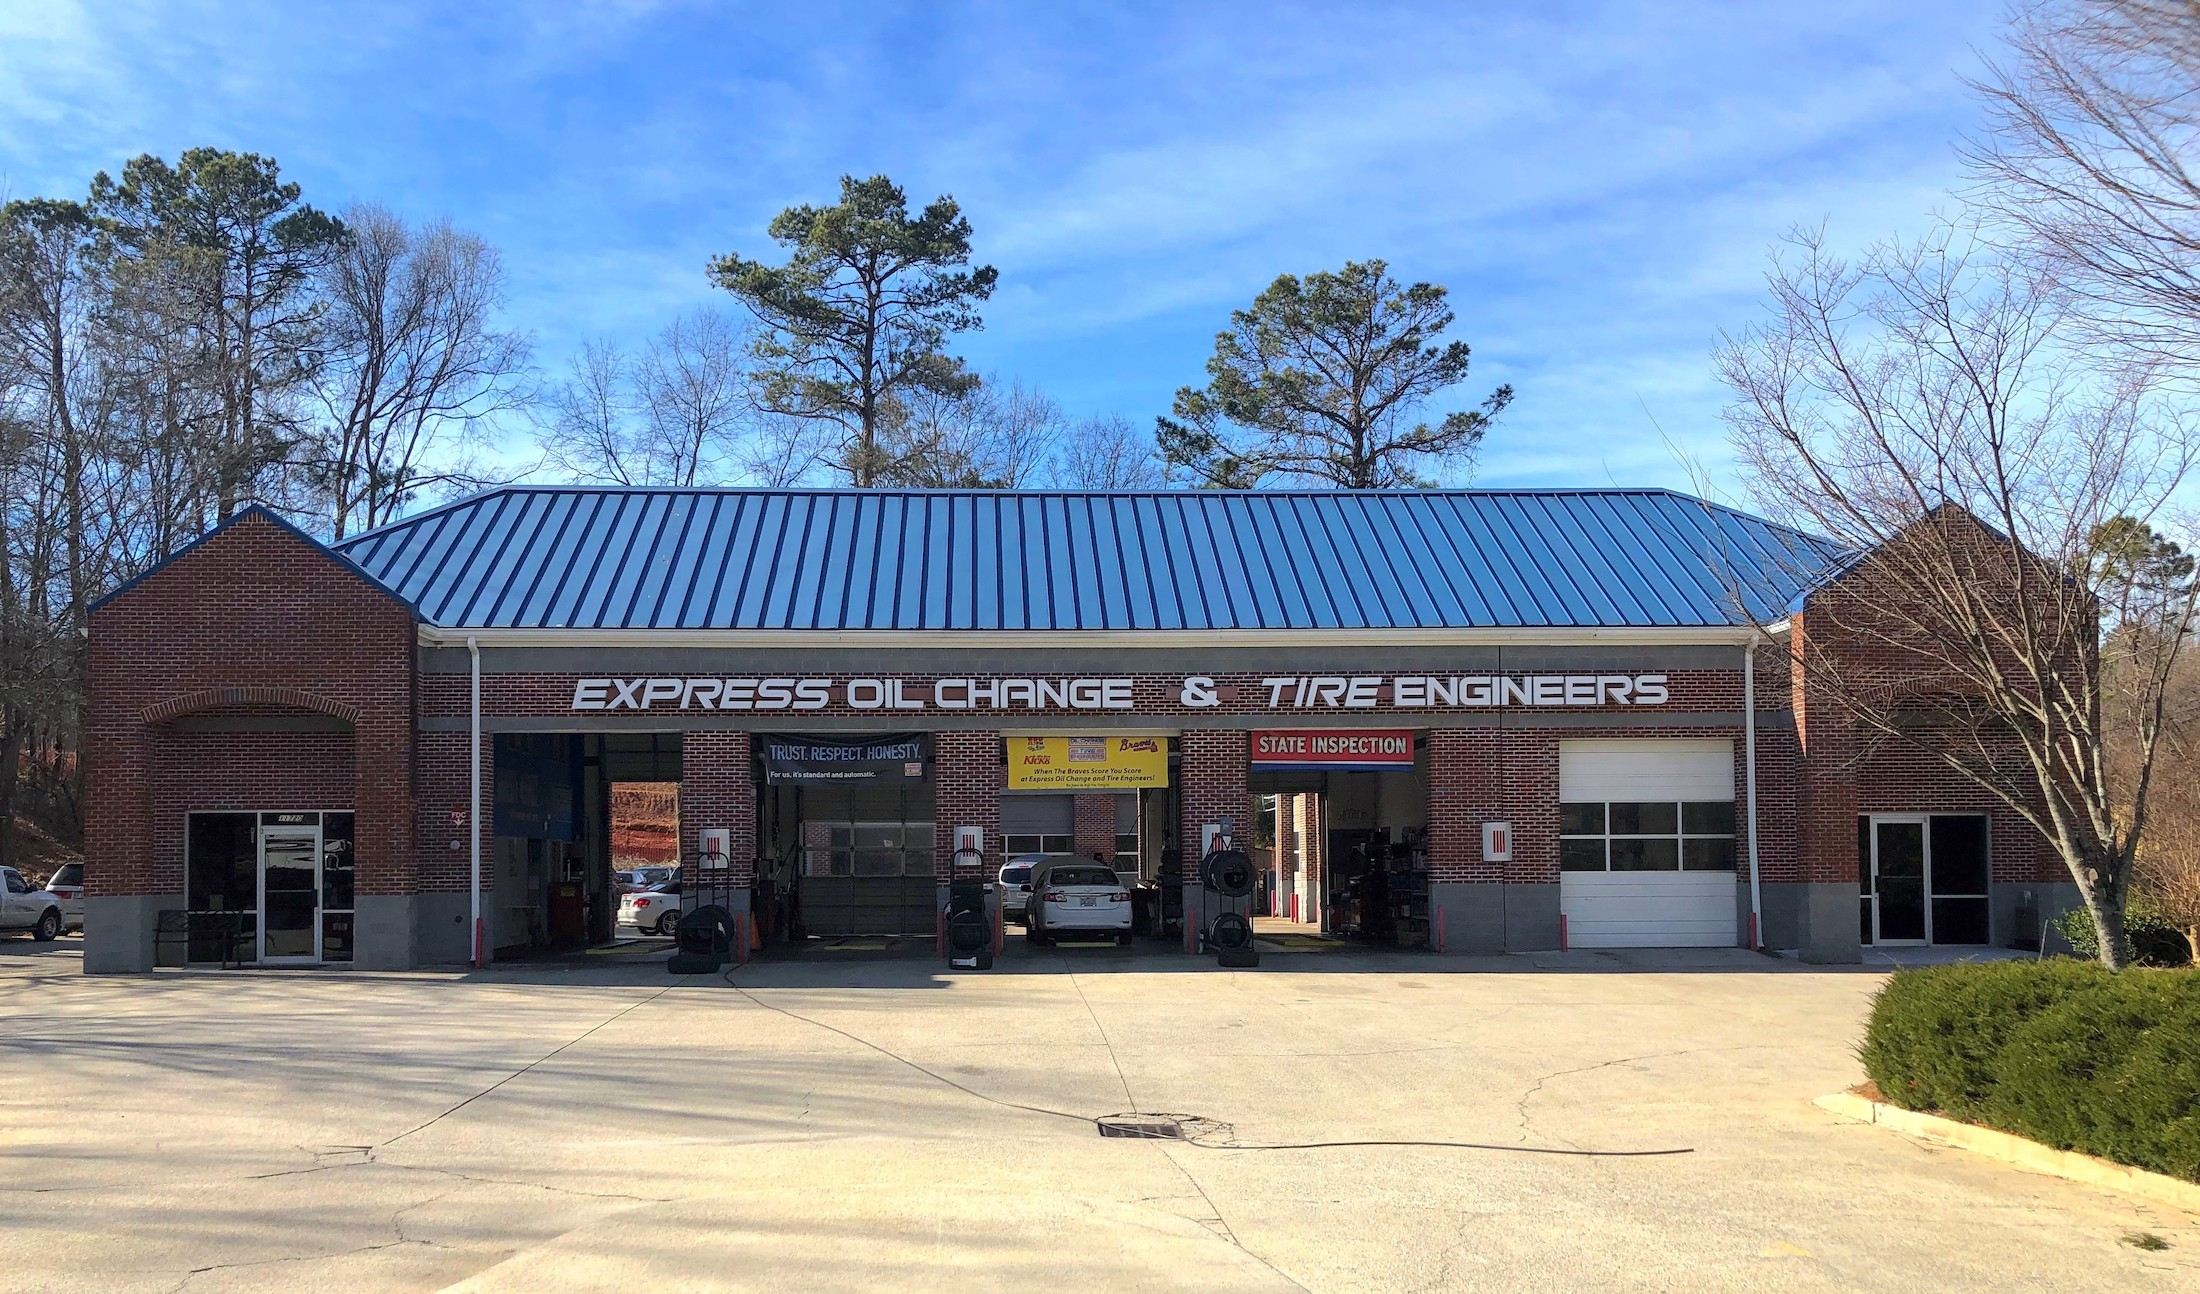 Express Oil Change & Tire Engineers Alpharetta, GA - Haynes Bridge Road store